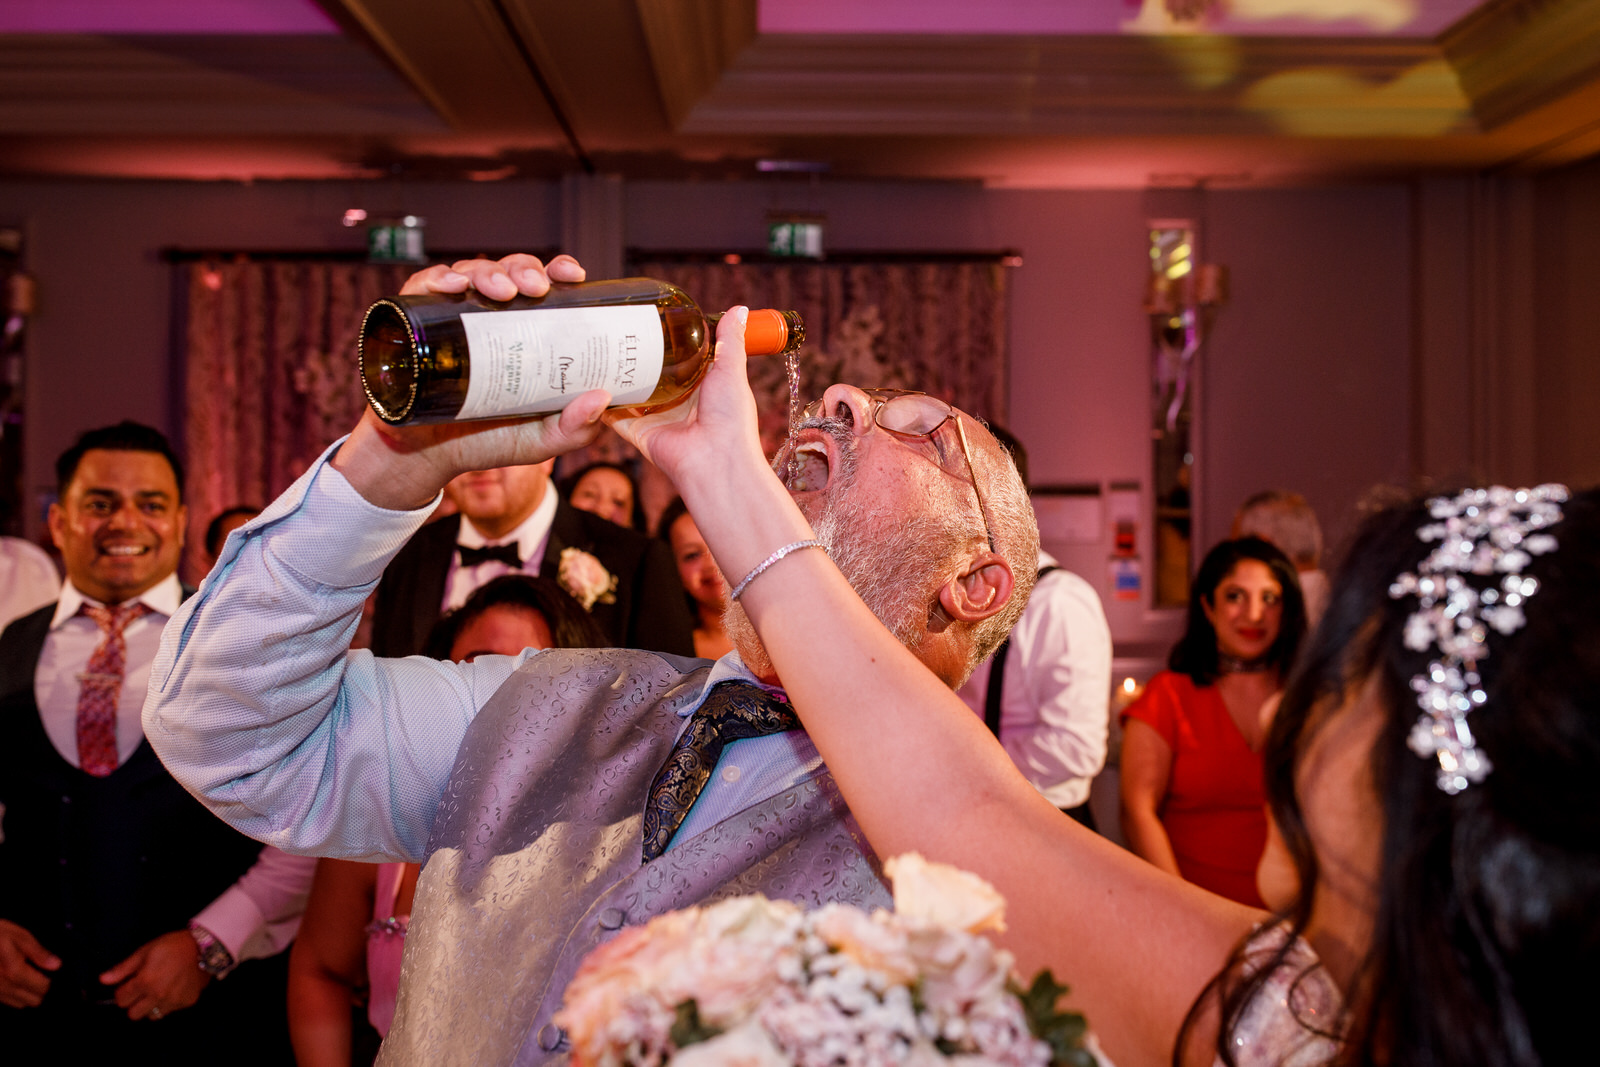 father of the bride swigging wine from bottle